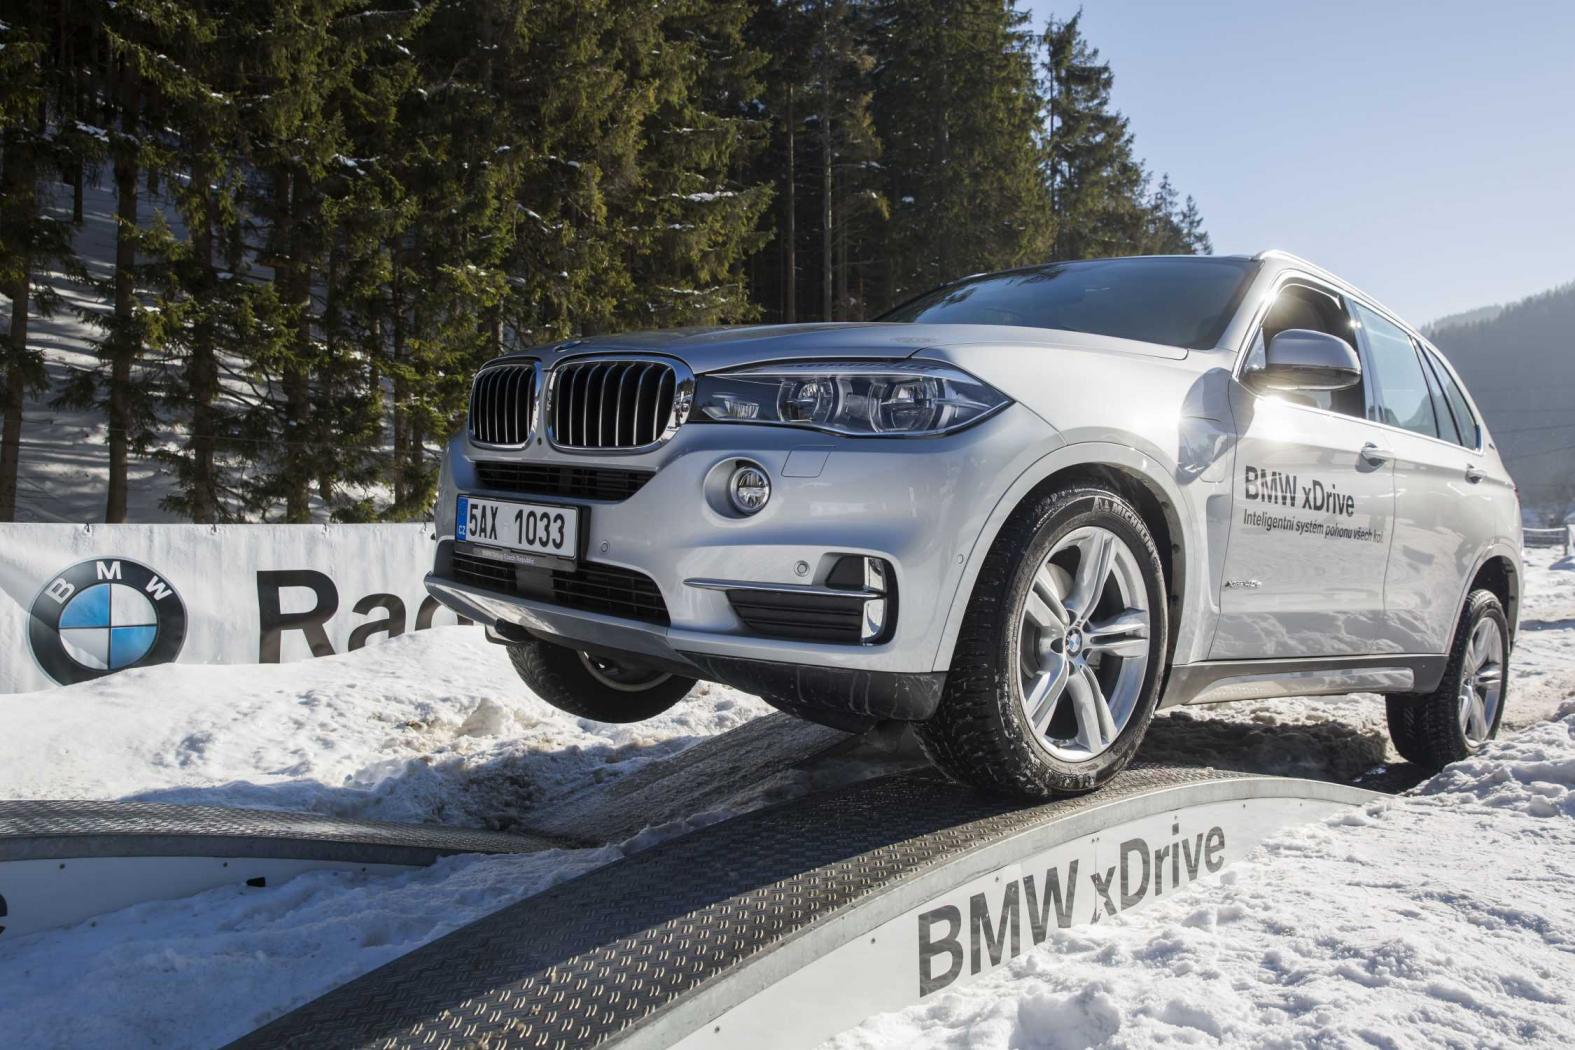 BMW-xDrive-1.jpeg